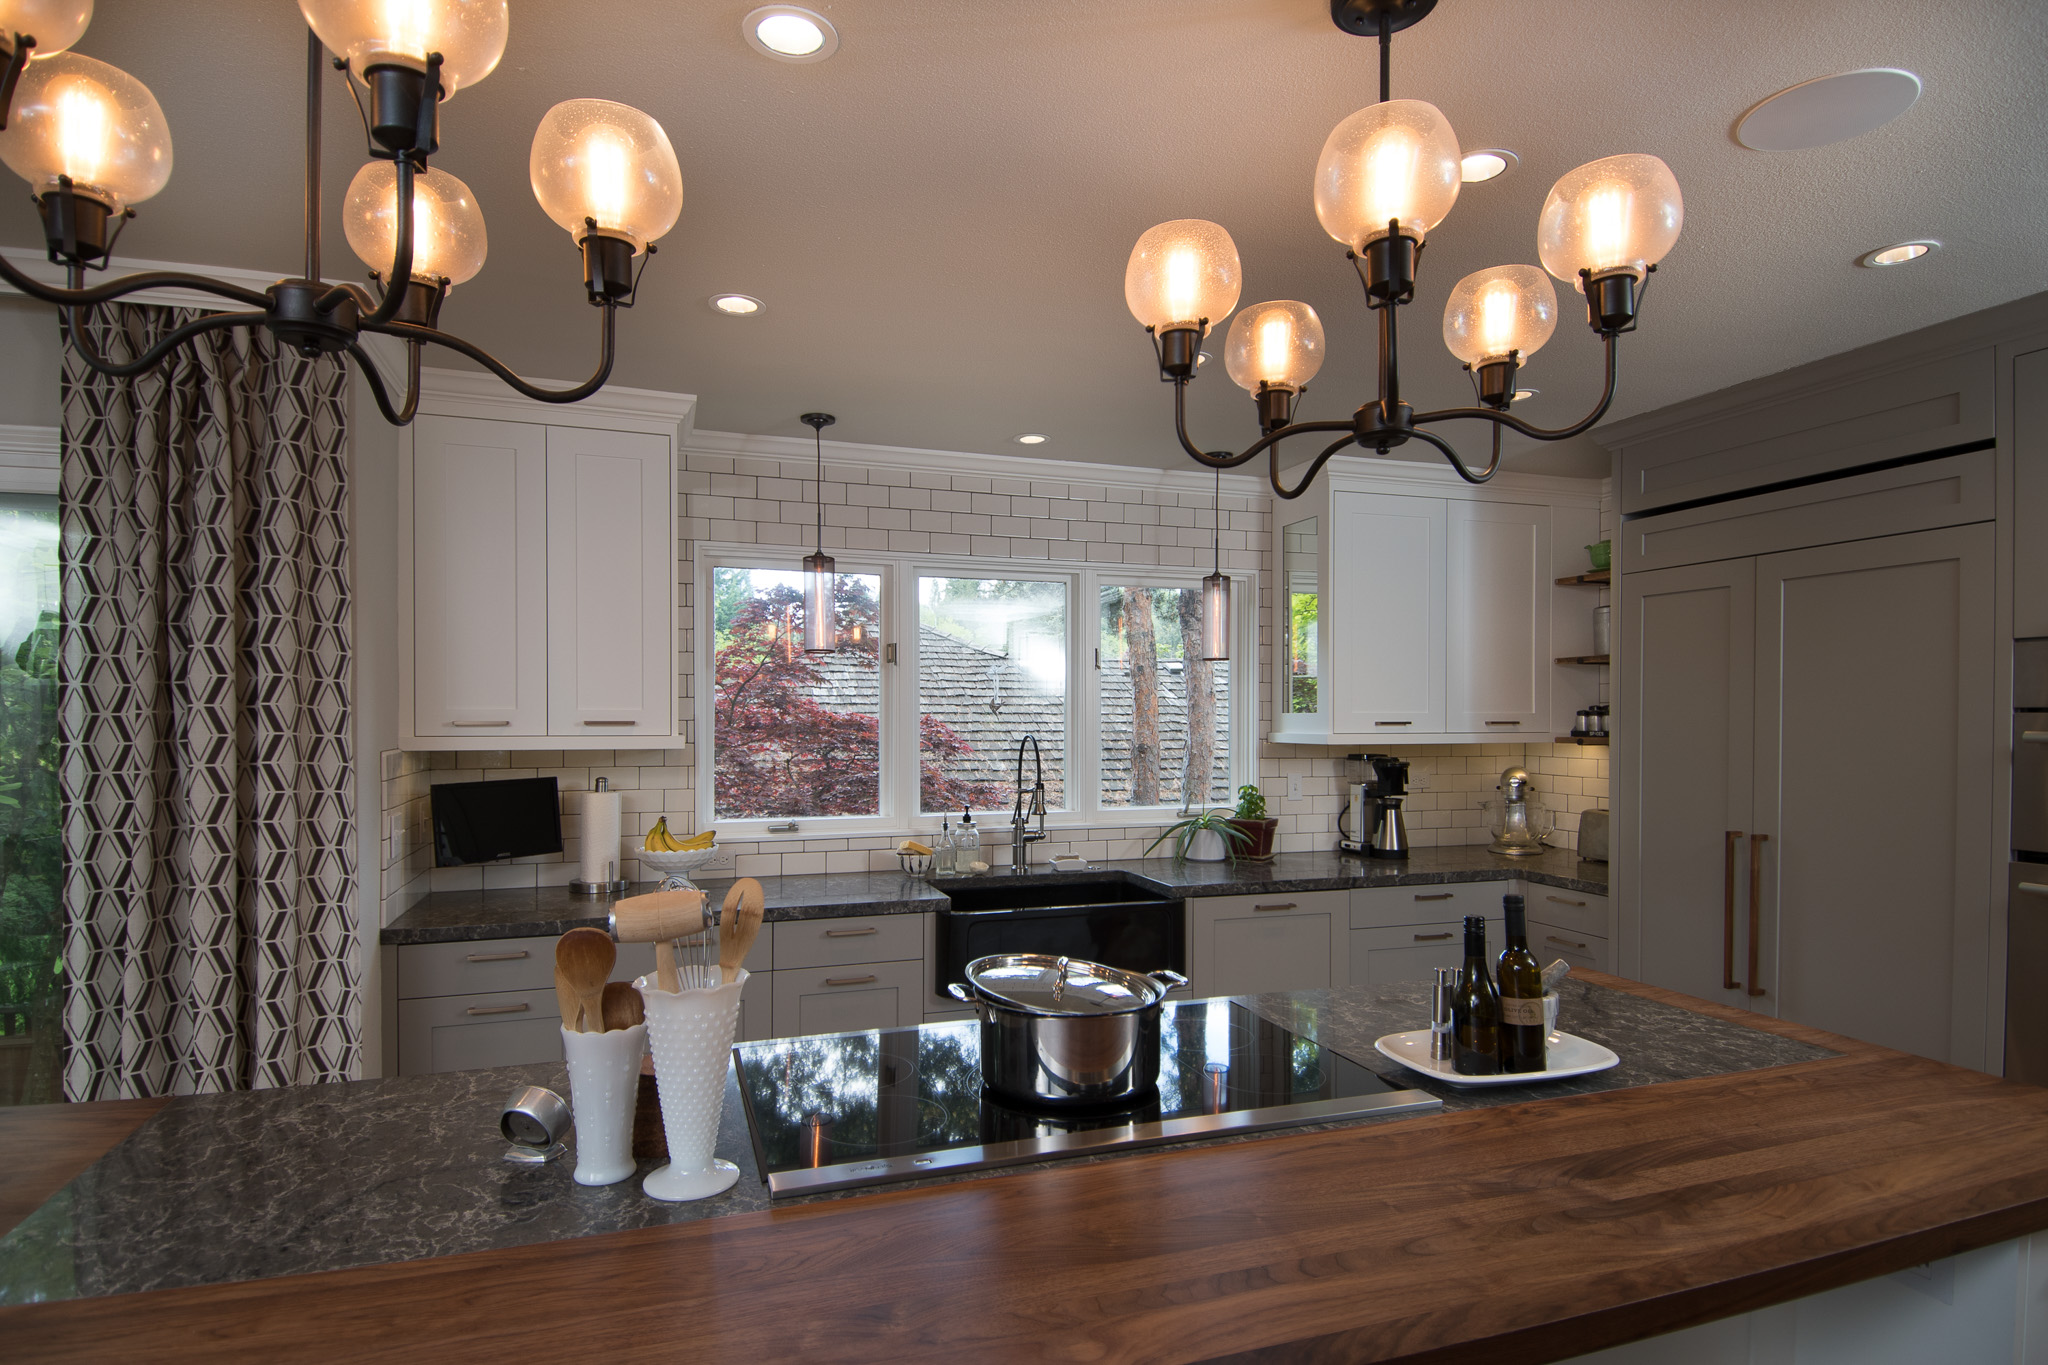 Lord Interior Design - Opening Up The Kitchen-4.jpg